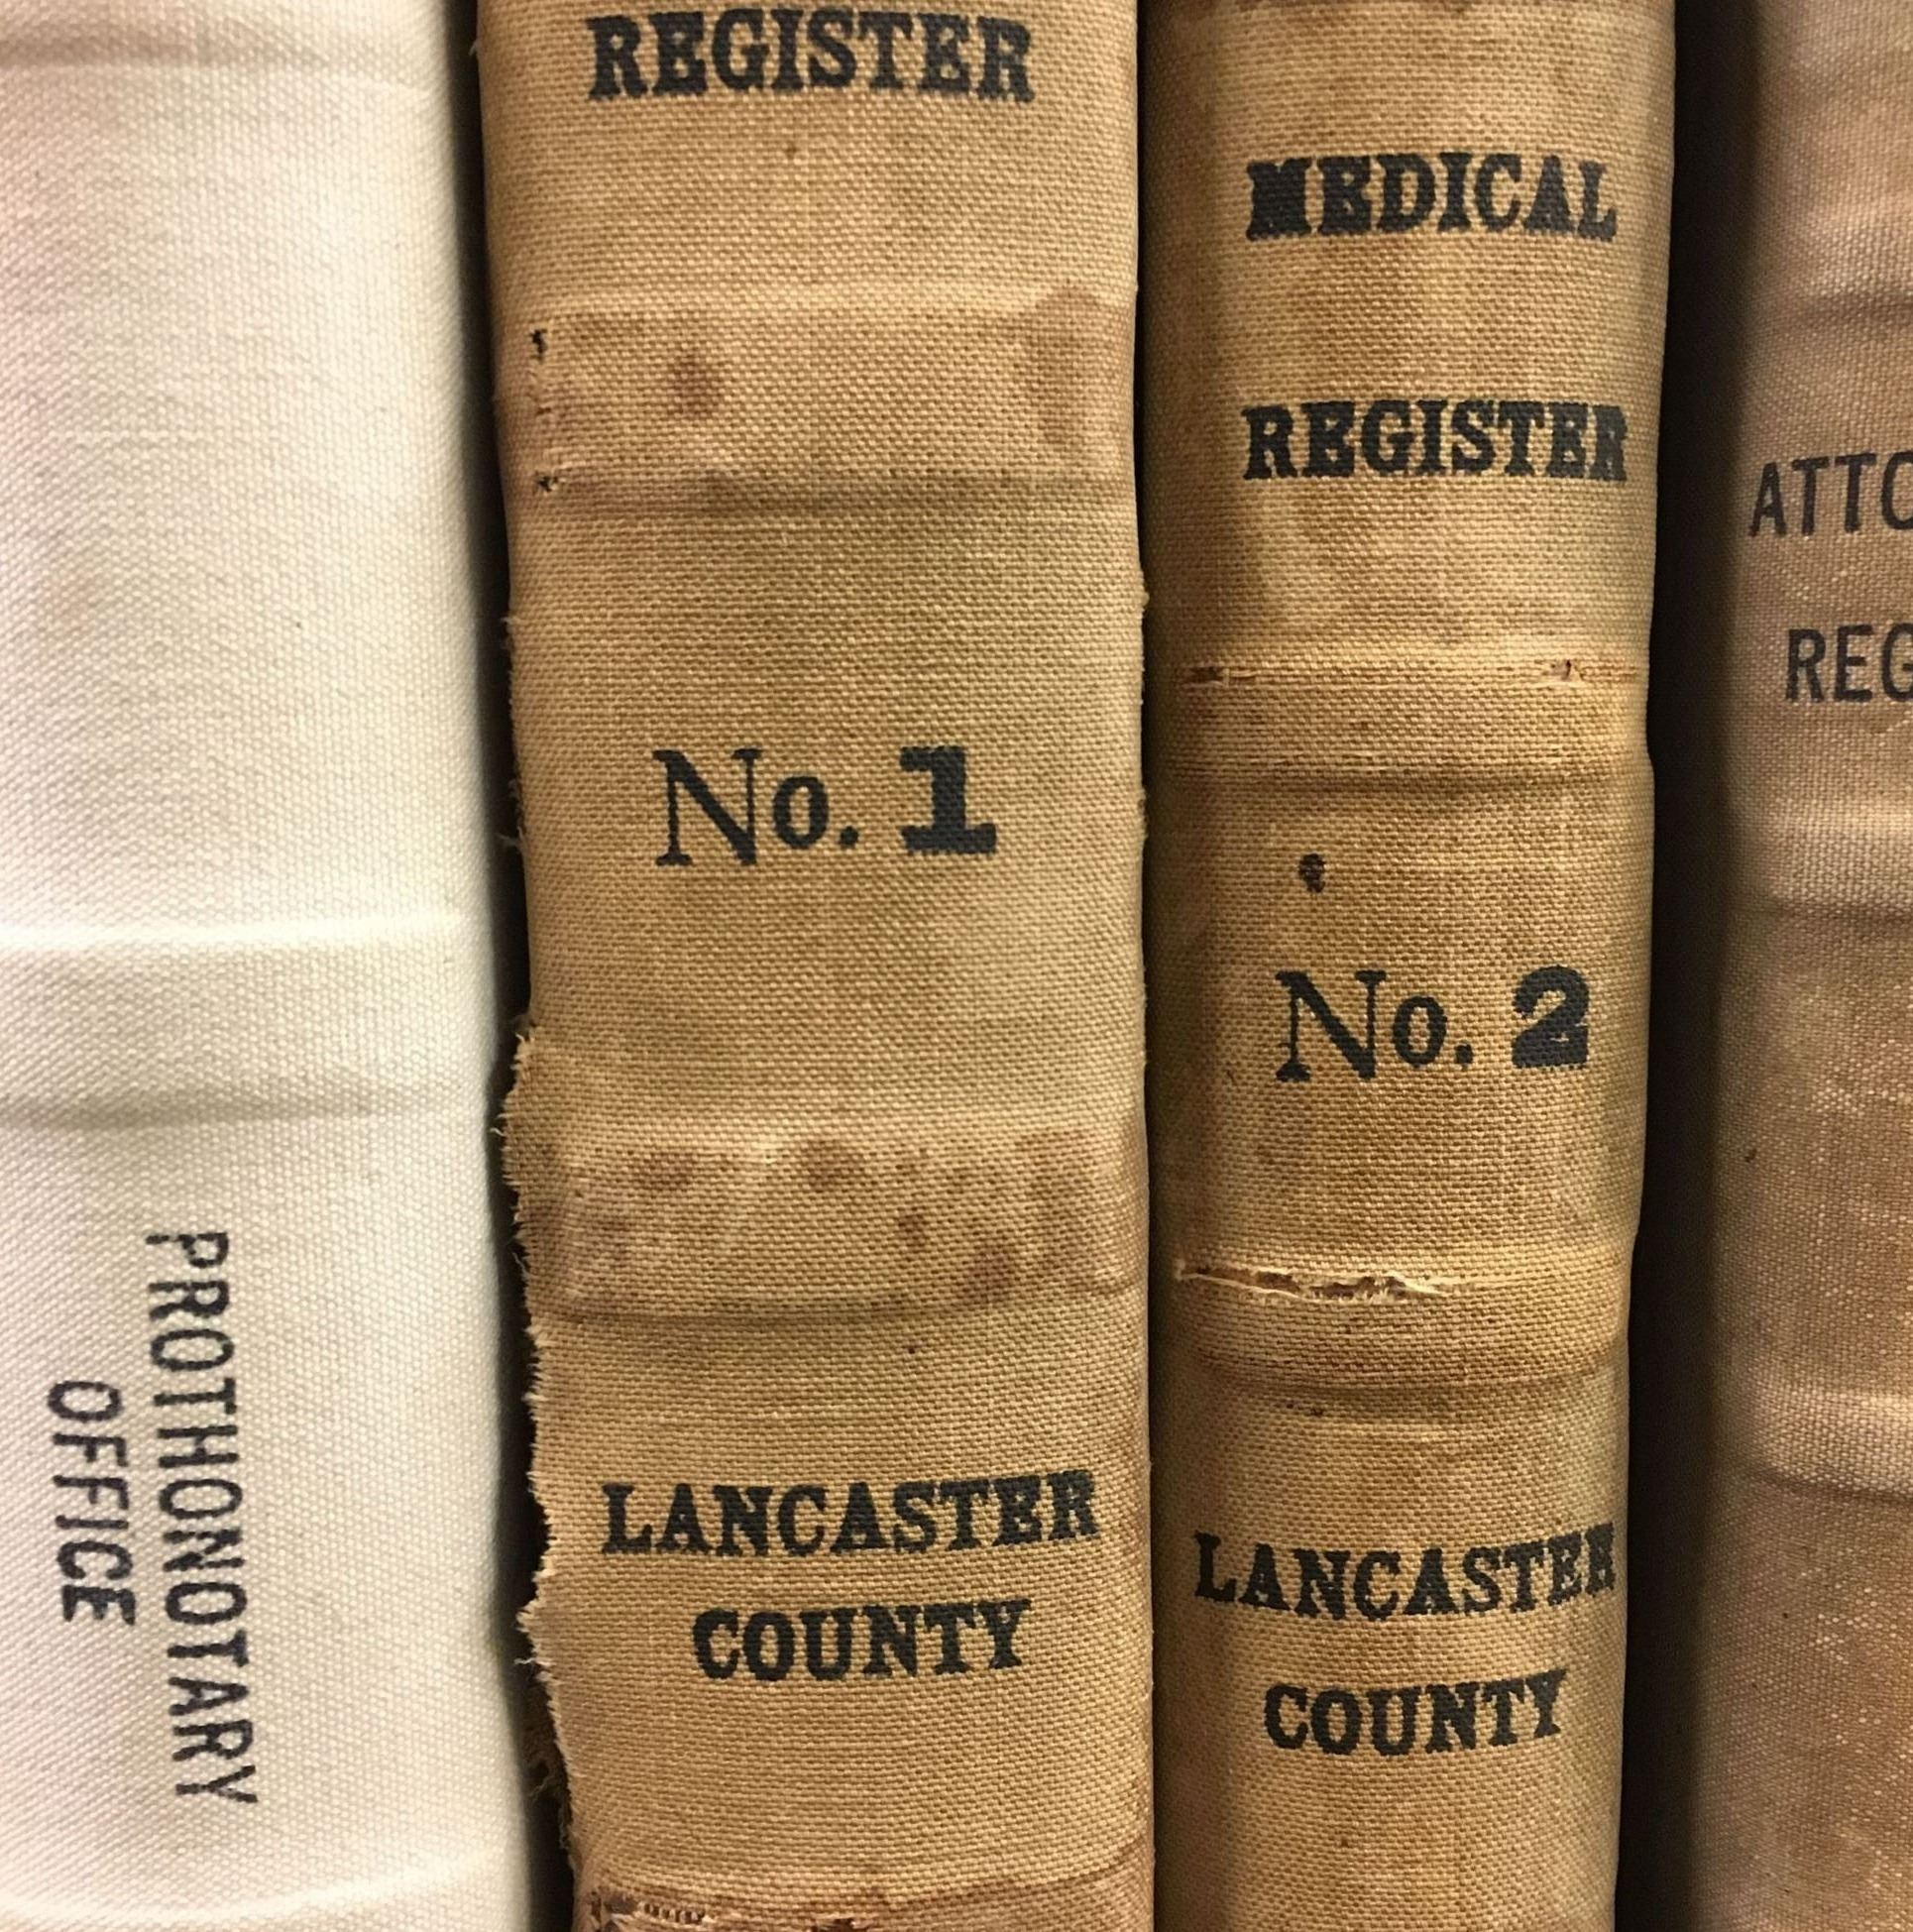 Medical Register Image